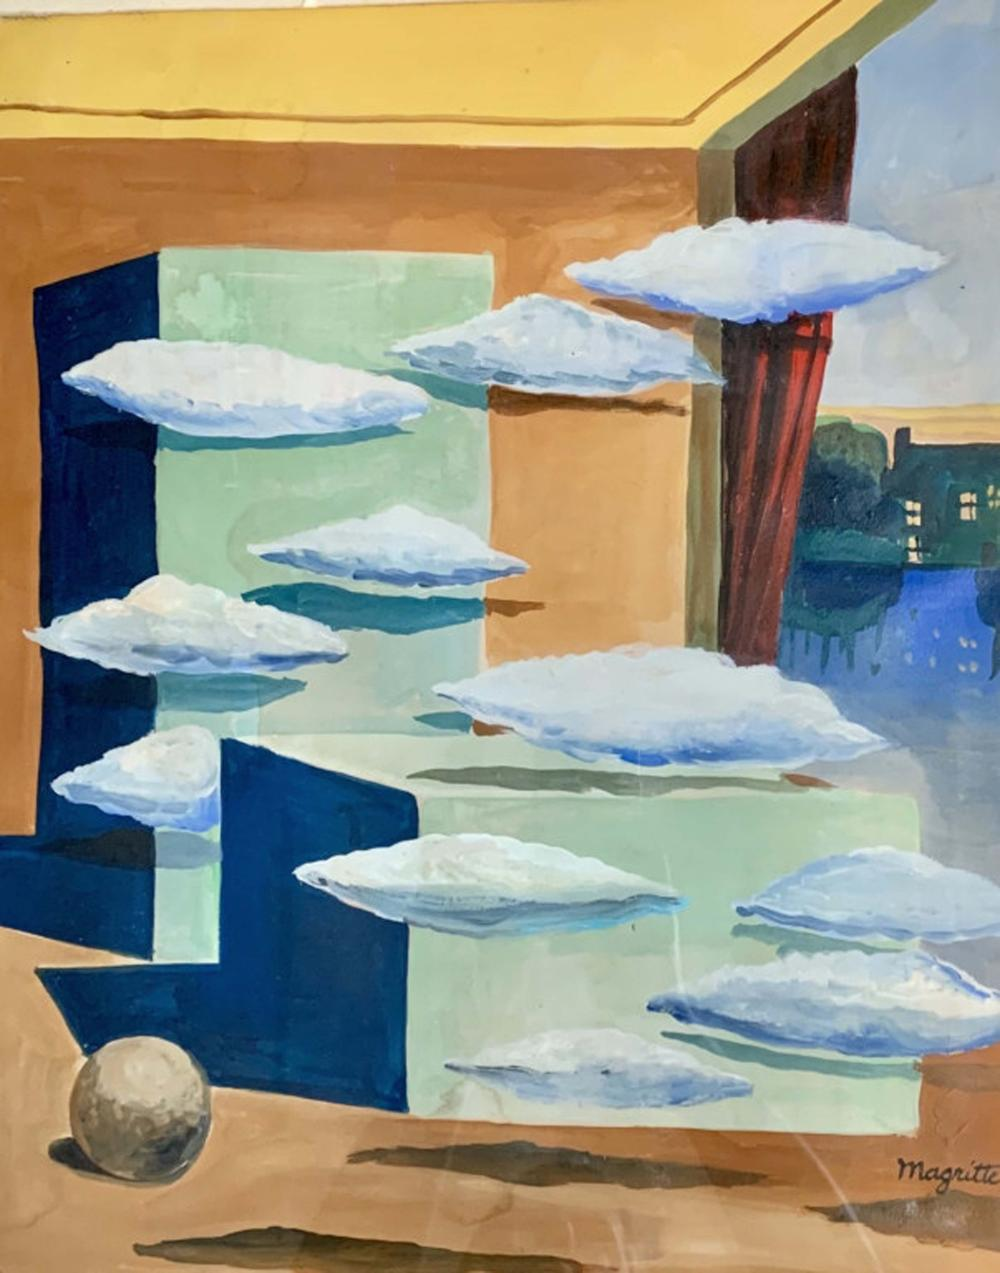 Lot 35: RENE MAGRITTE ACRYLIC ON CANVAS WORK V$2,500